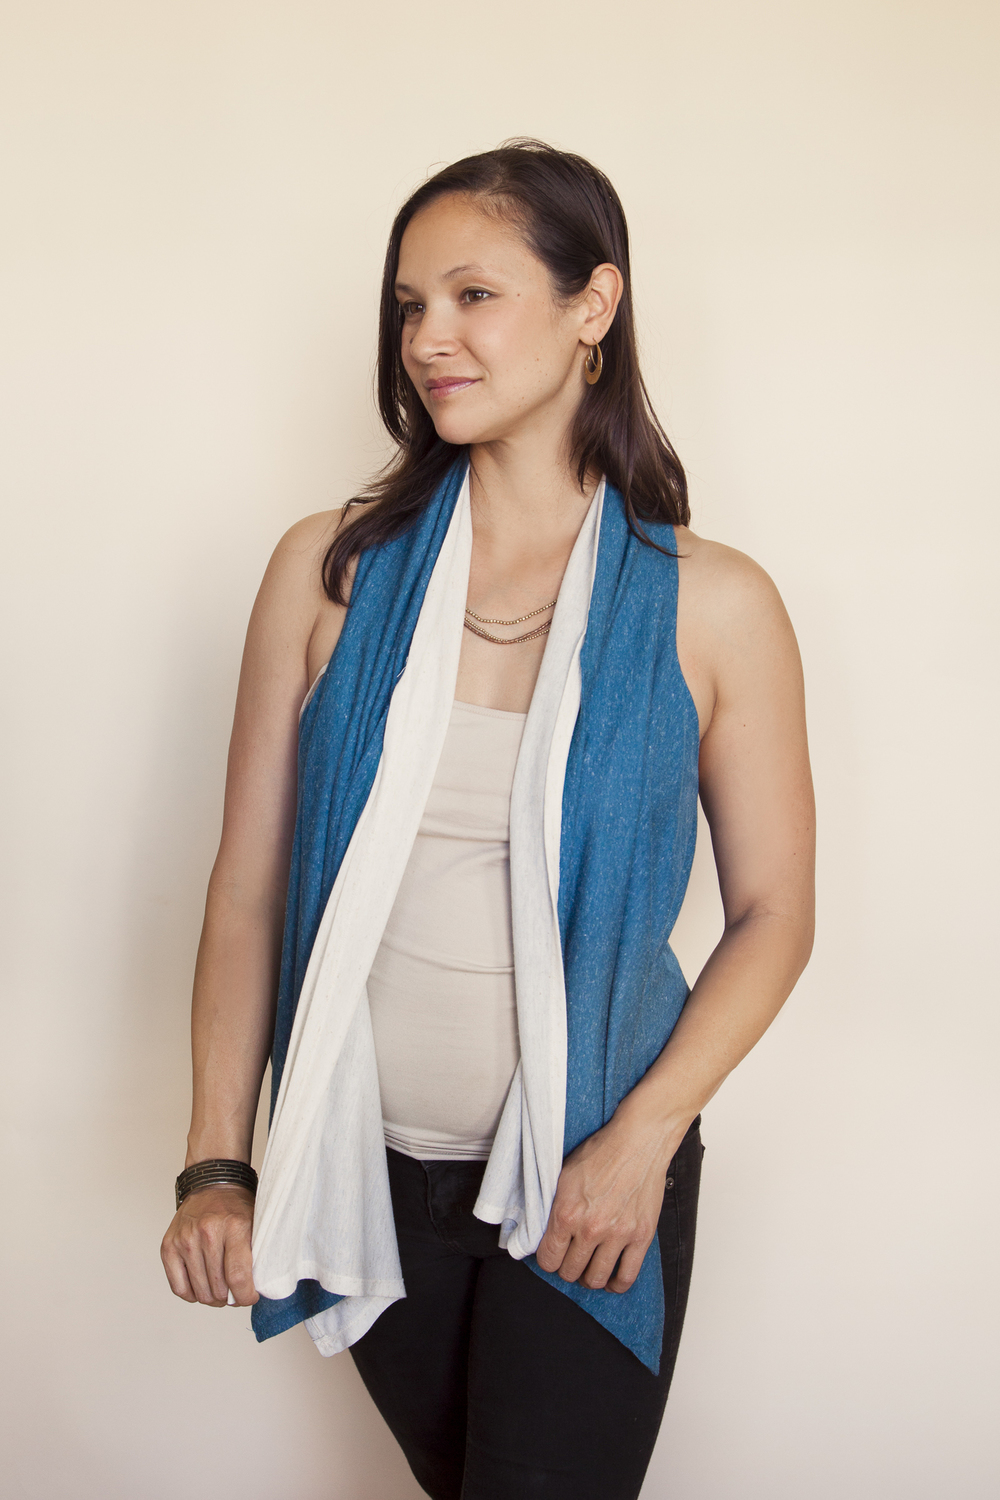 The NEST by Lucu. A cute and clever alternative to a nursing cover.